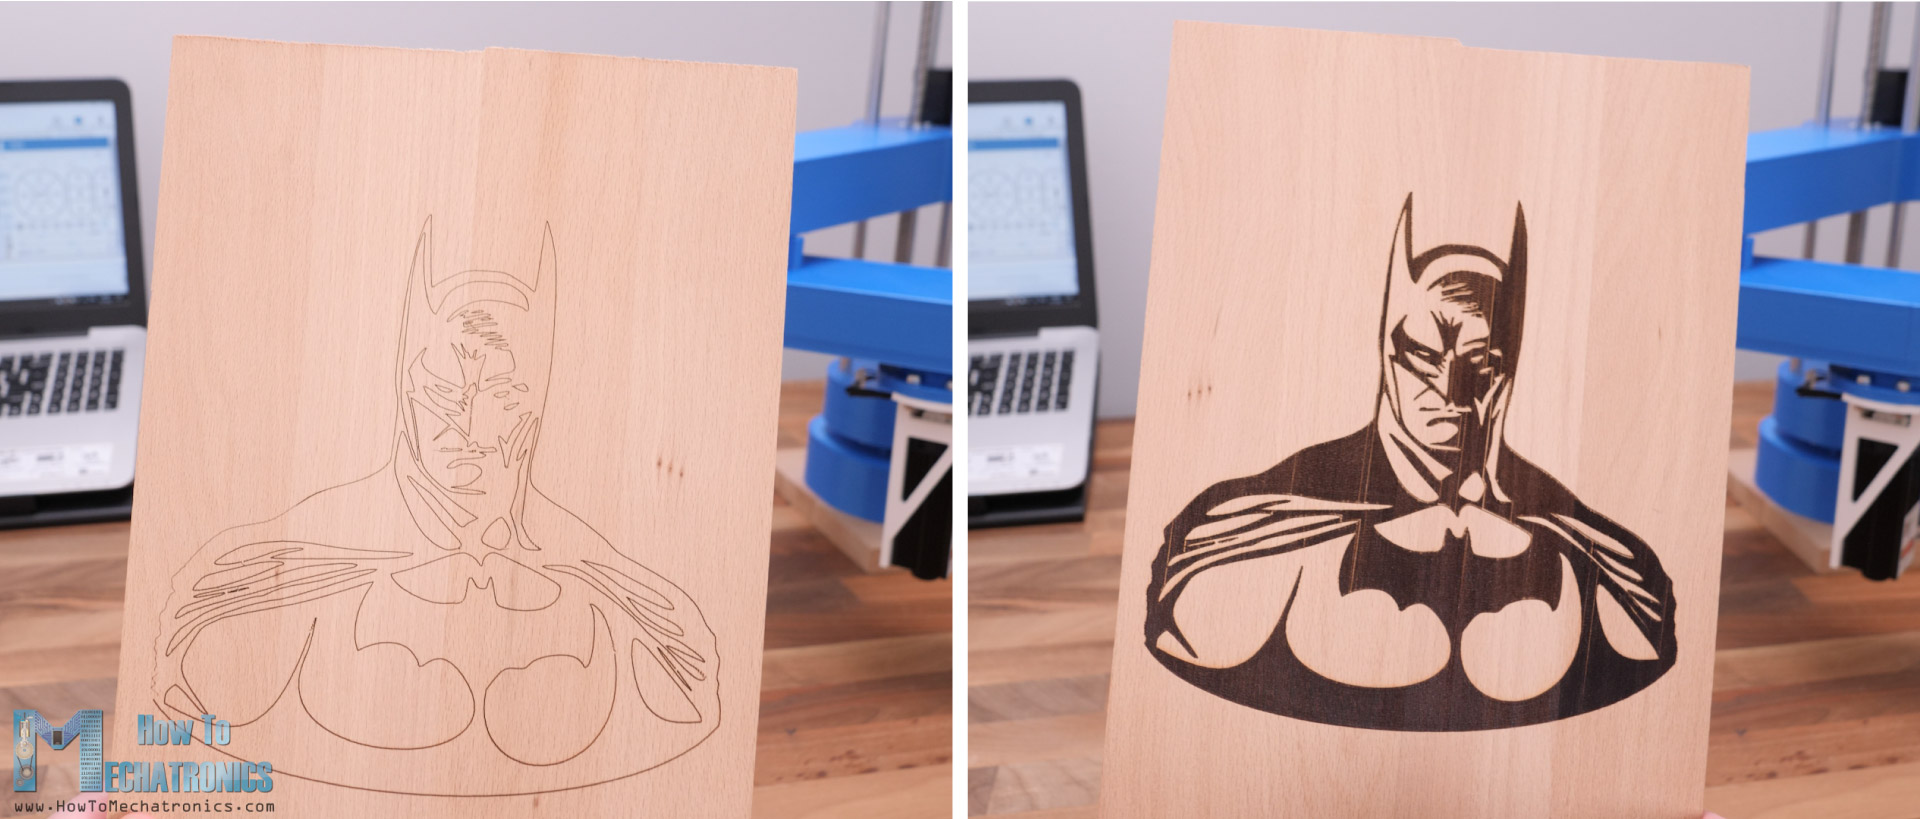 Inkscape-Lasertools plugin for laser engraving - contours only vs infill